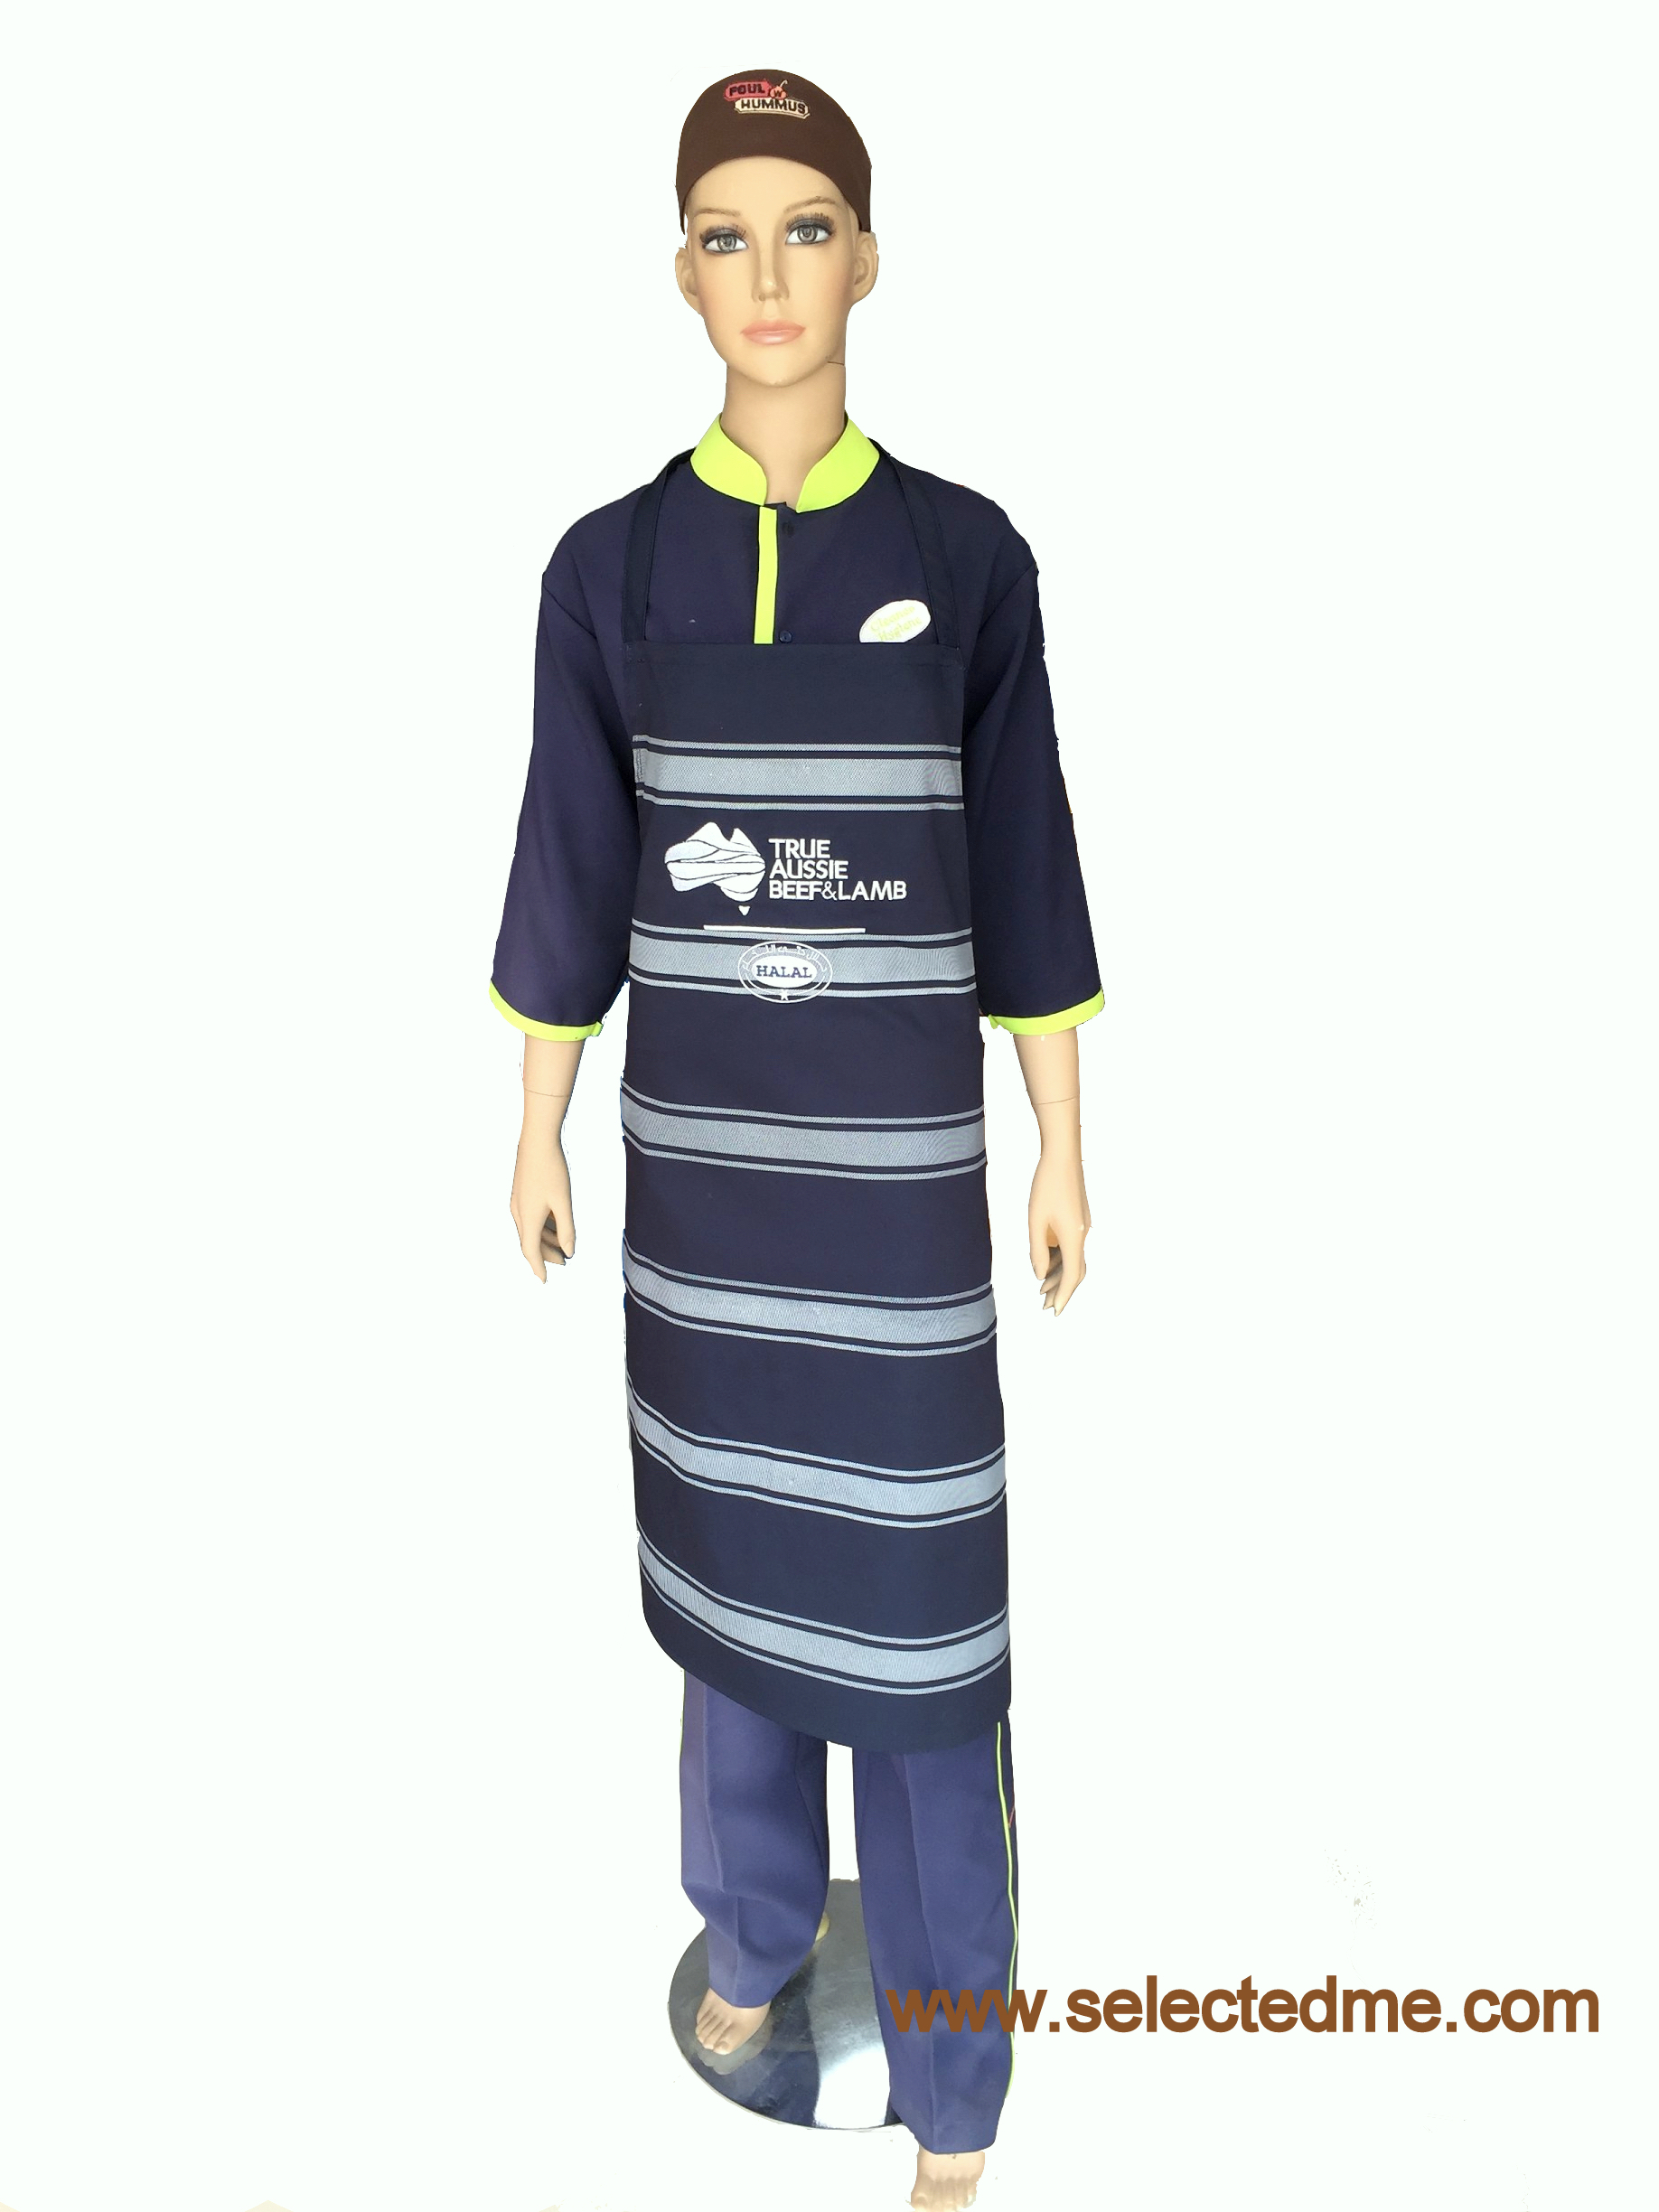 Designer Apron in Dubai UAE with printing Design Model